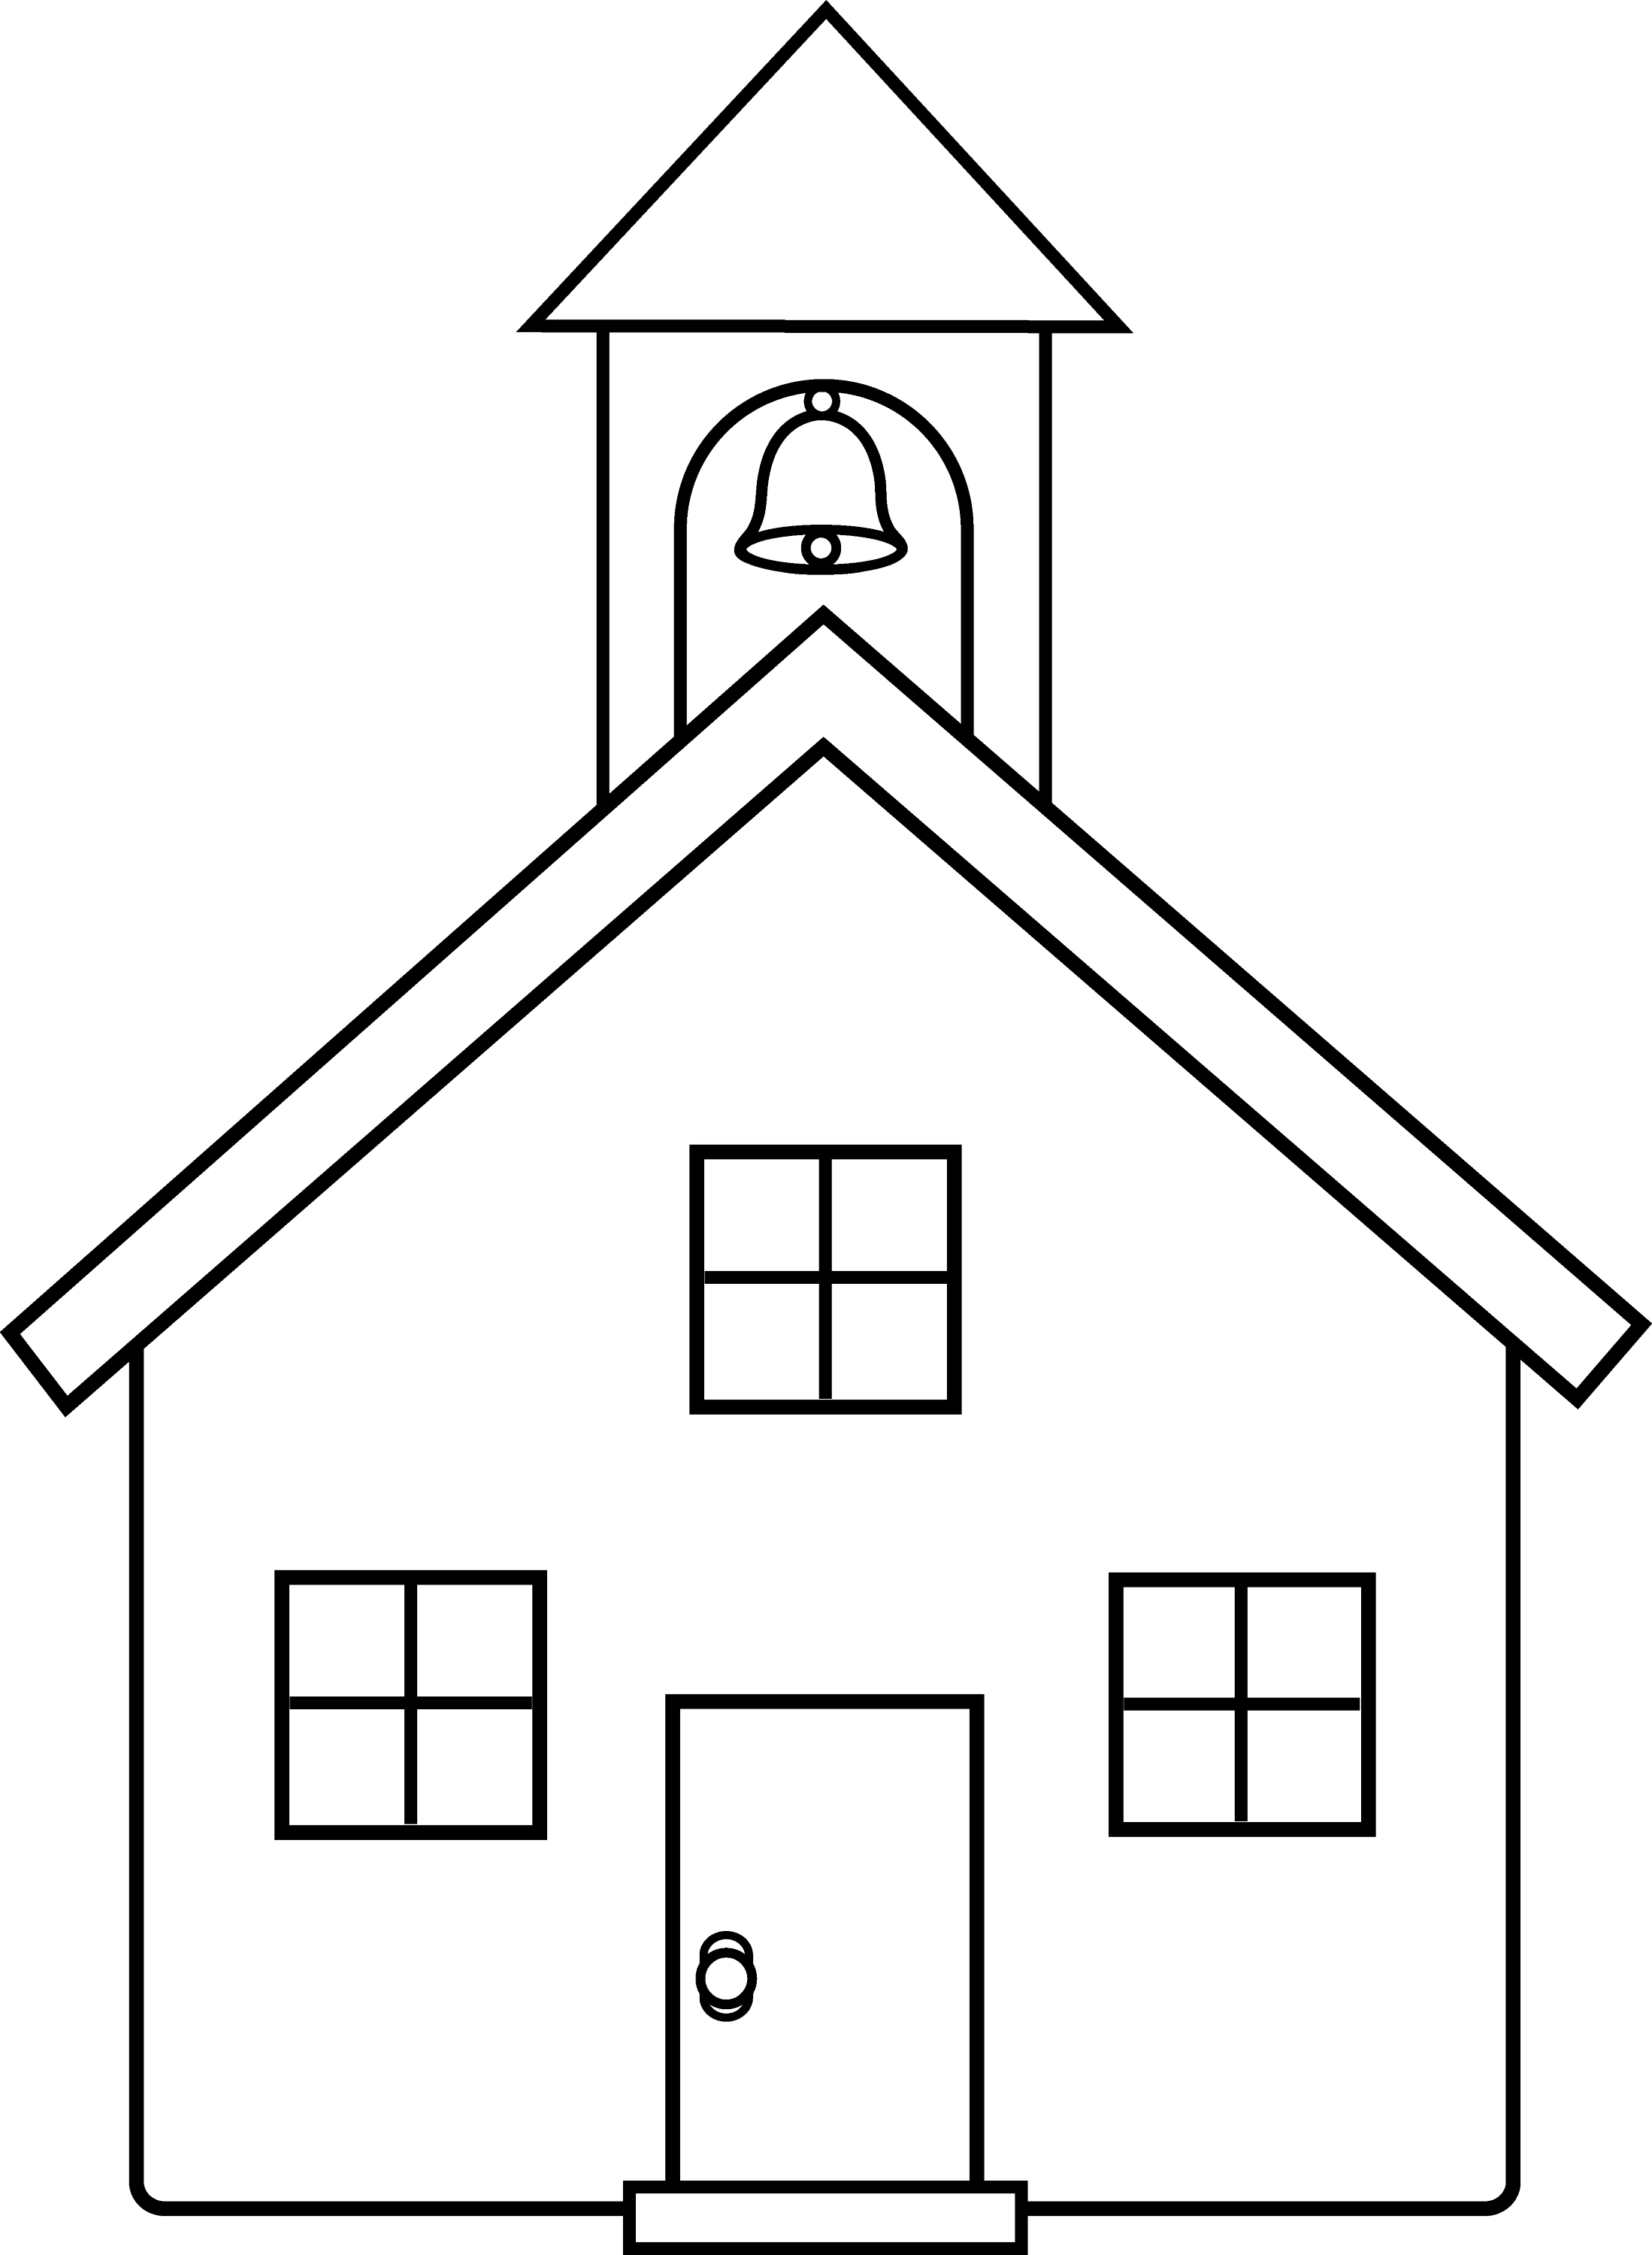 Line Art House Png : School house line art free clip